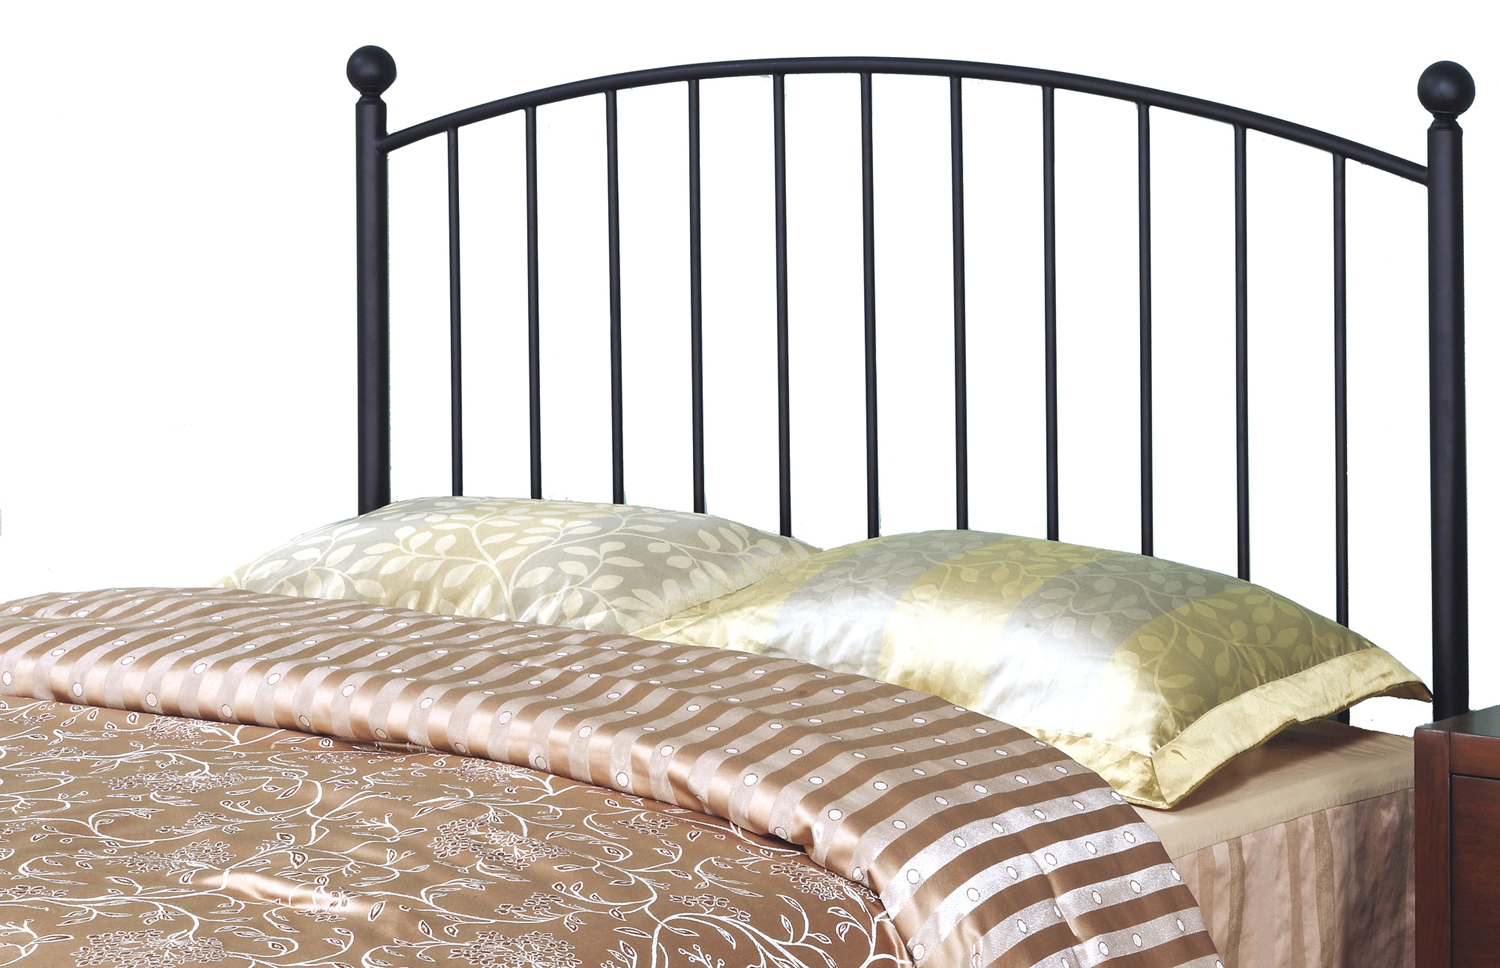 Queen Or Full Size Bed Headboard or Footboard, Coffee